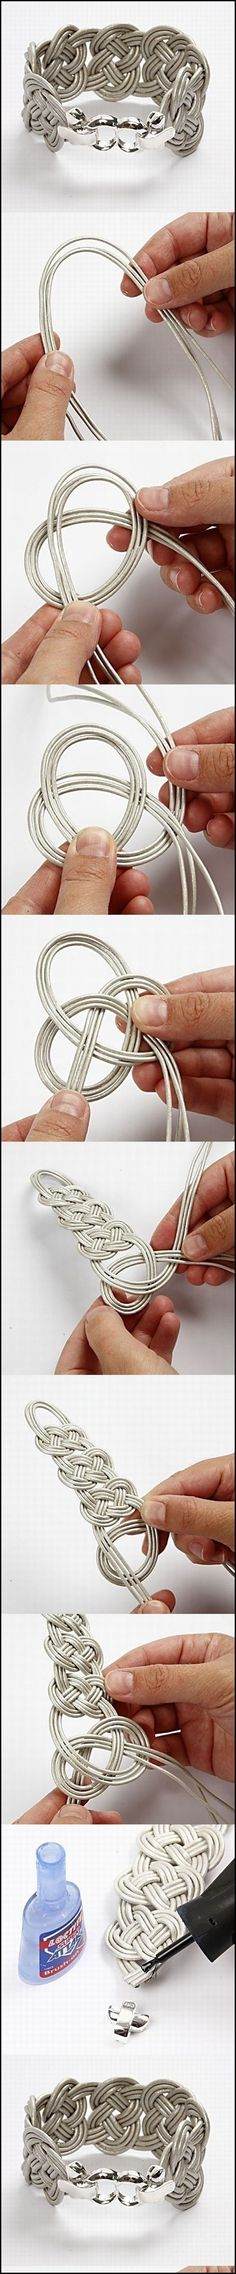 braid bracelet m Wonderful DIY cool bracelet